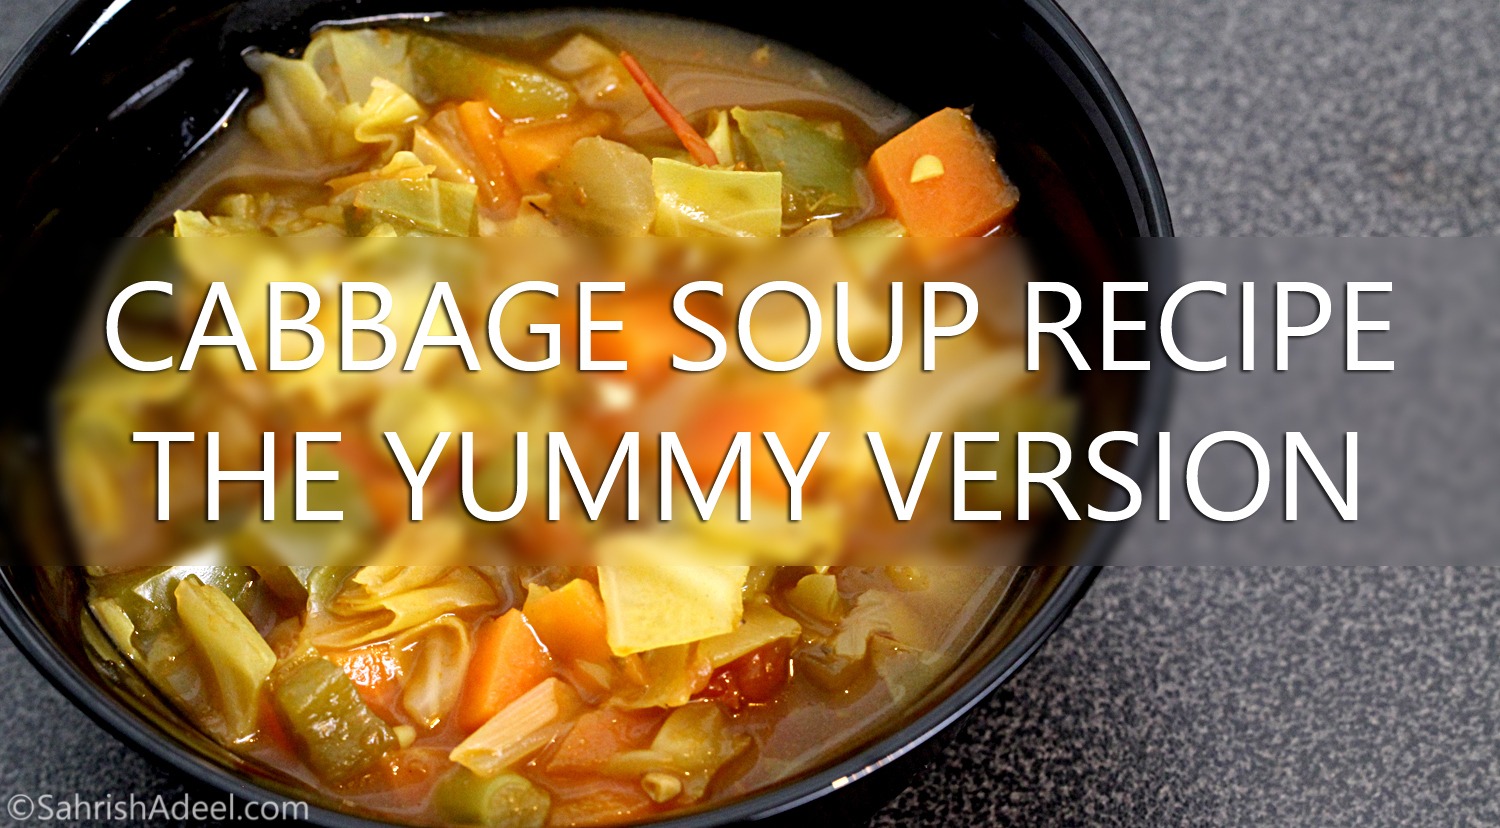 Cabbage soup recipe one that is really yummy cabbage soup diet i tried a few recipes for cabbage soup for the cabbage soup diet from the web but none of them was exactly what i would actually look forward to eating forumfinder Image collections